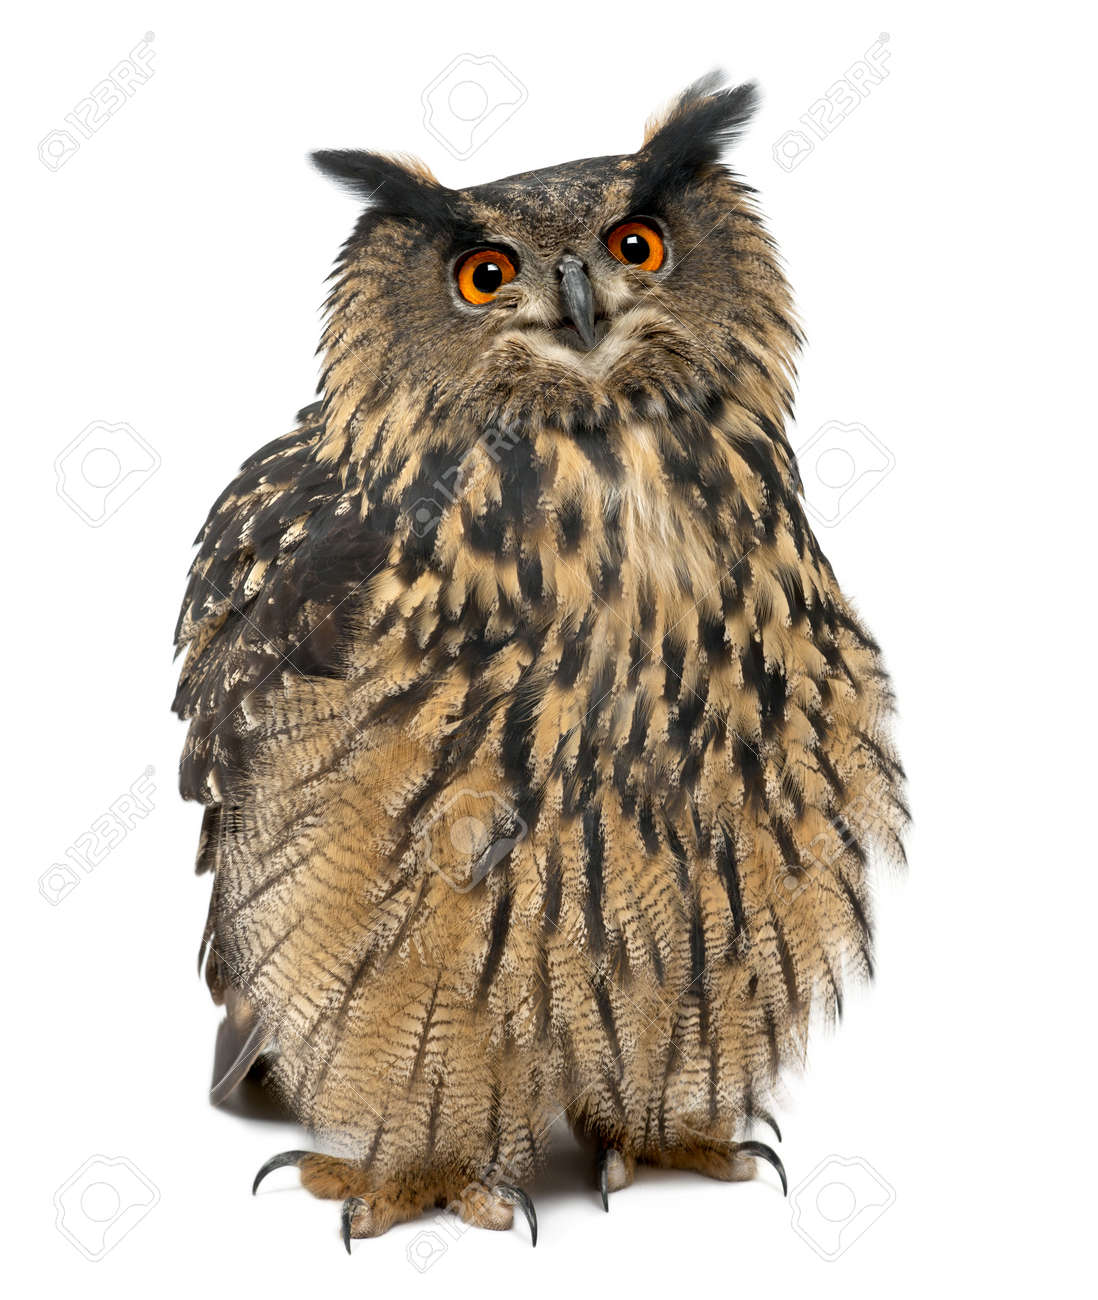 owl isolated stock photos royalty free owl isolated images and